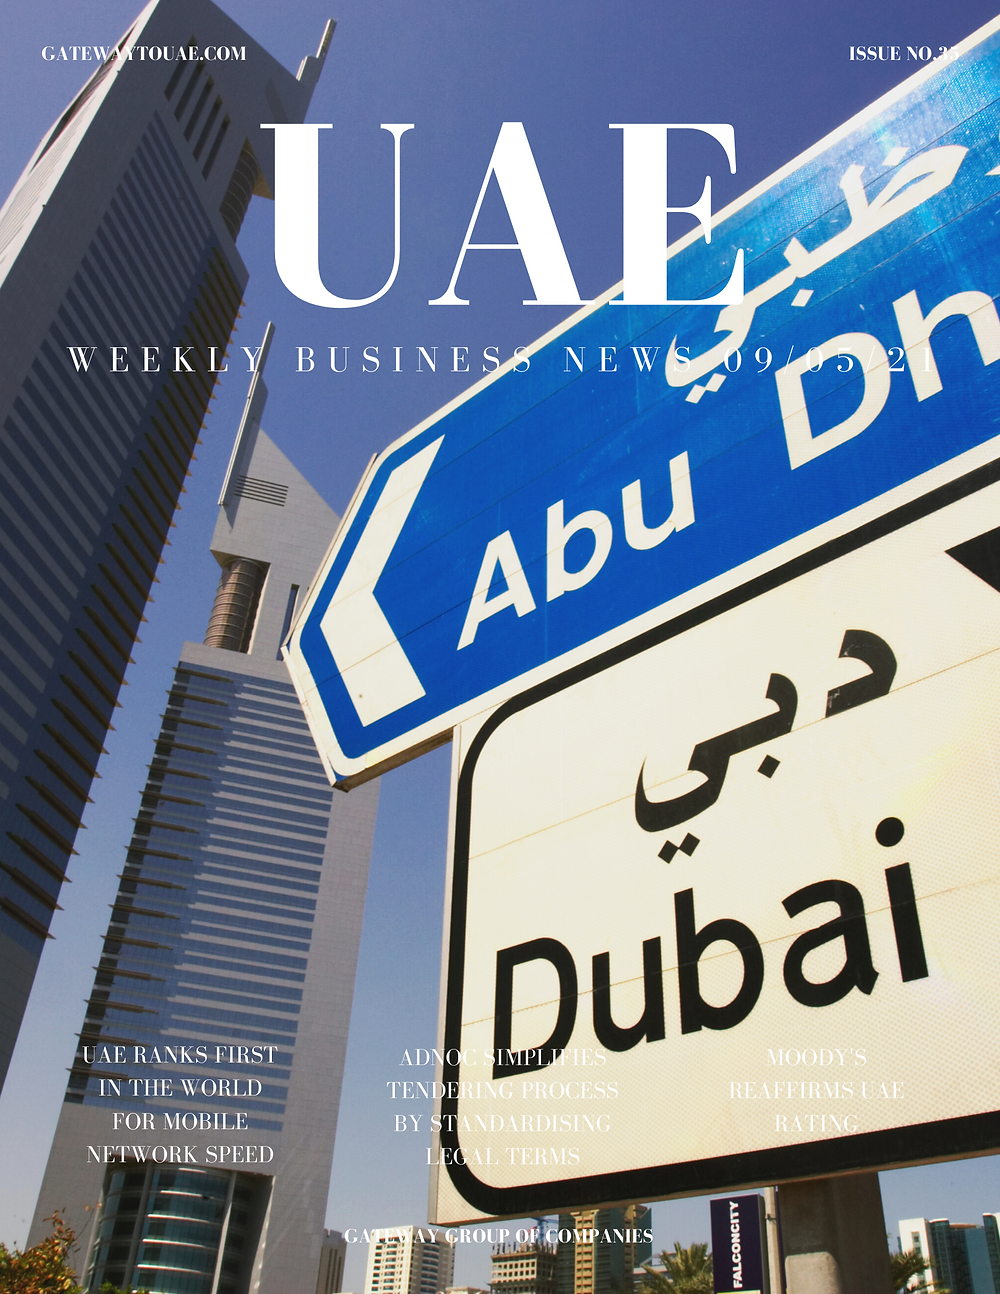 UAE weekly business news headlines 9th May 2021 Issue 35 Gateway Group Of Companies Abu Dhabi Dubai weekly magazine company formation business setup local sponsor service agent visas company formation authority trade licence license